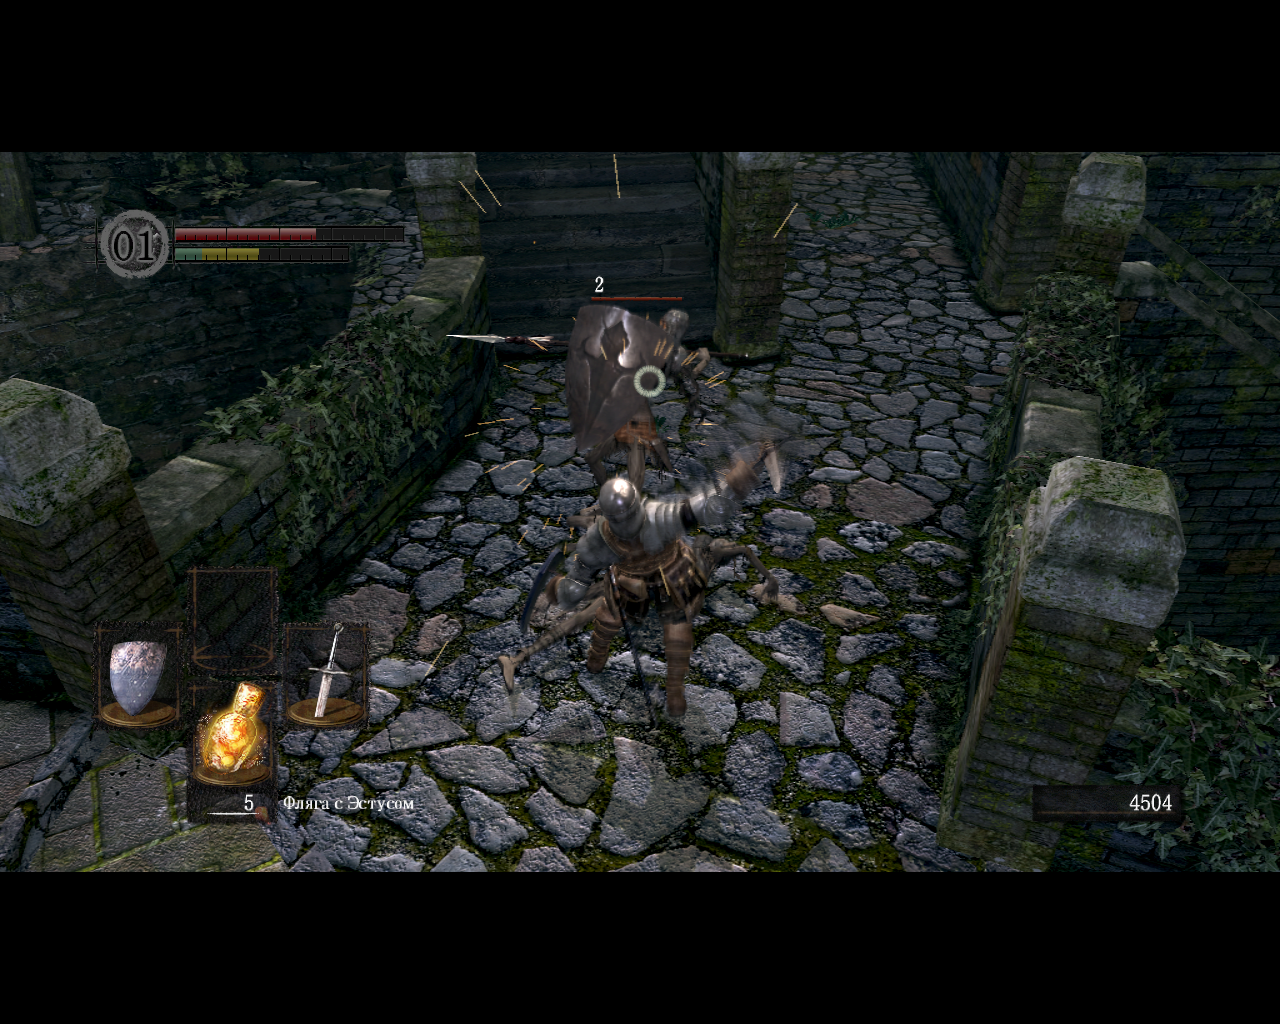 Dark Souls: Prepare to Die Edition Windows Enemies use shields and parry doing extra damage